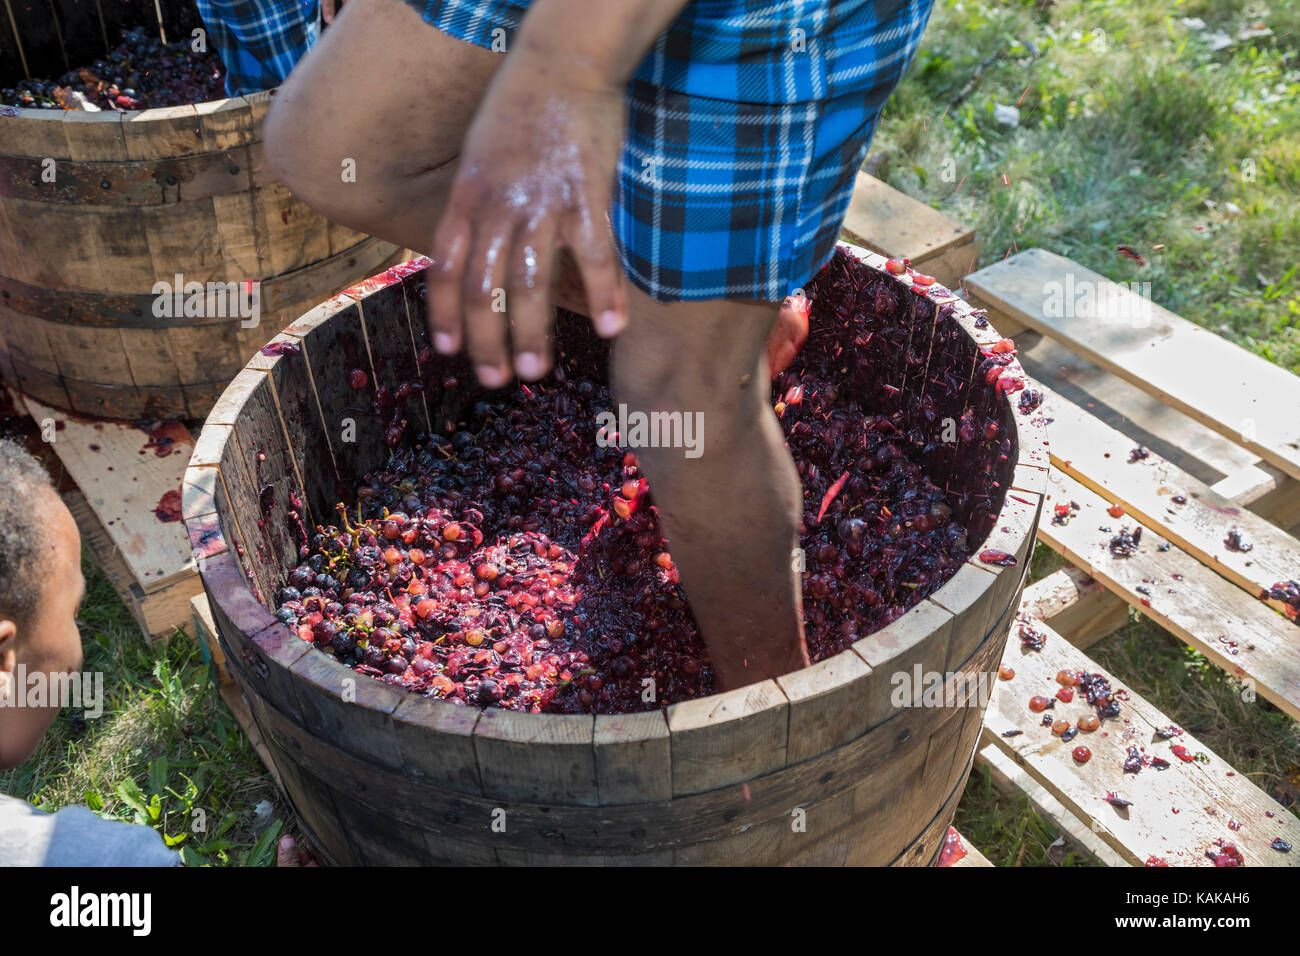 Detroit, Michigan - Children participate in a grape stomping contest at a block party in the Morningside neighborhood. - Stock Image